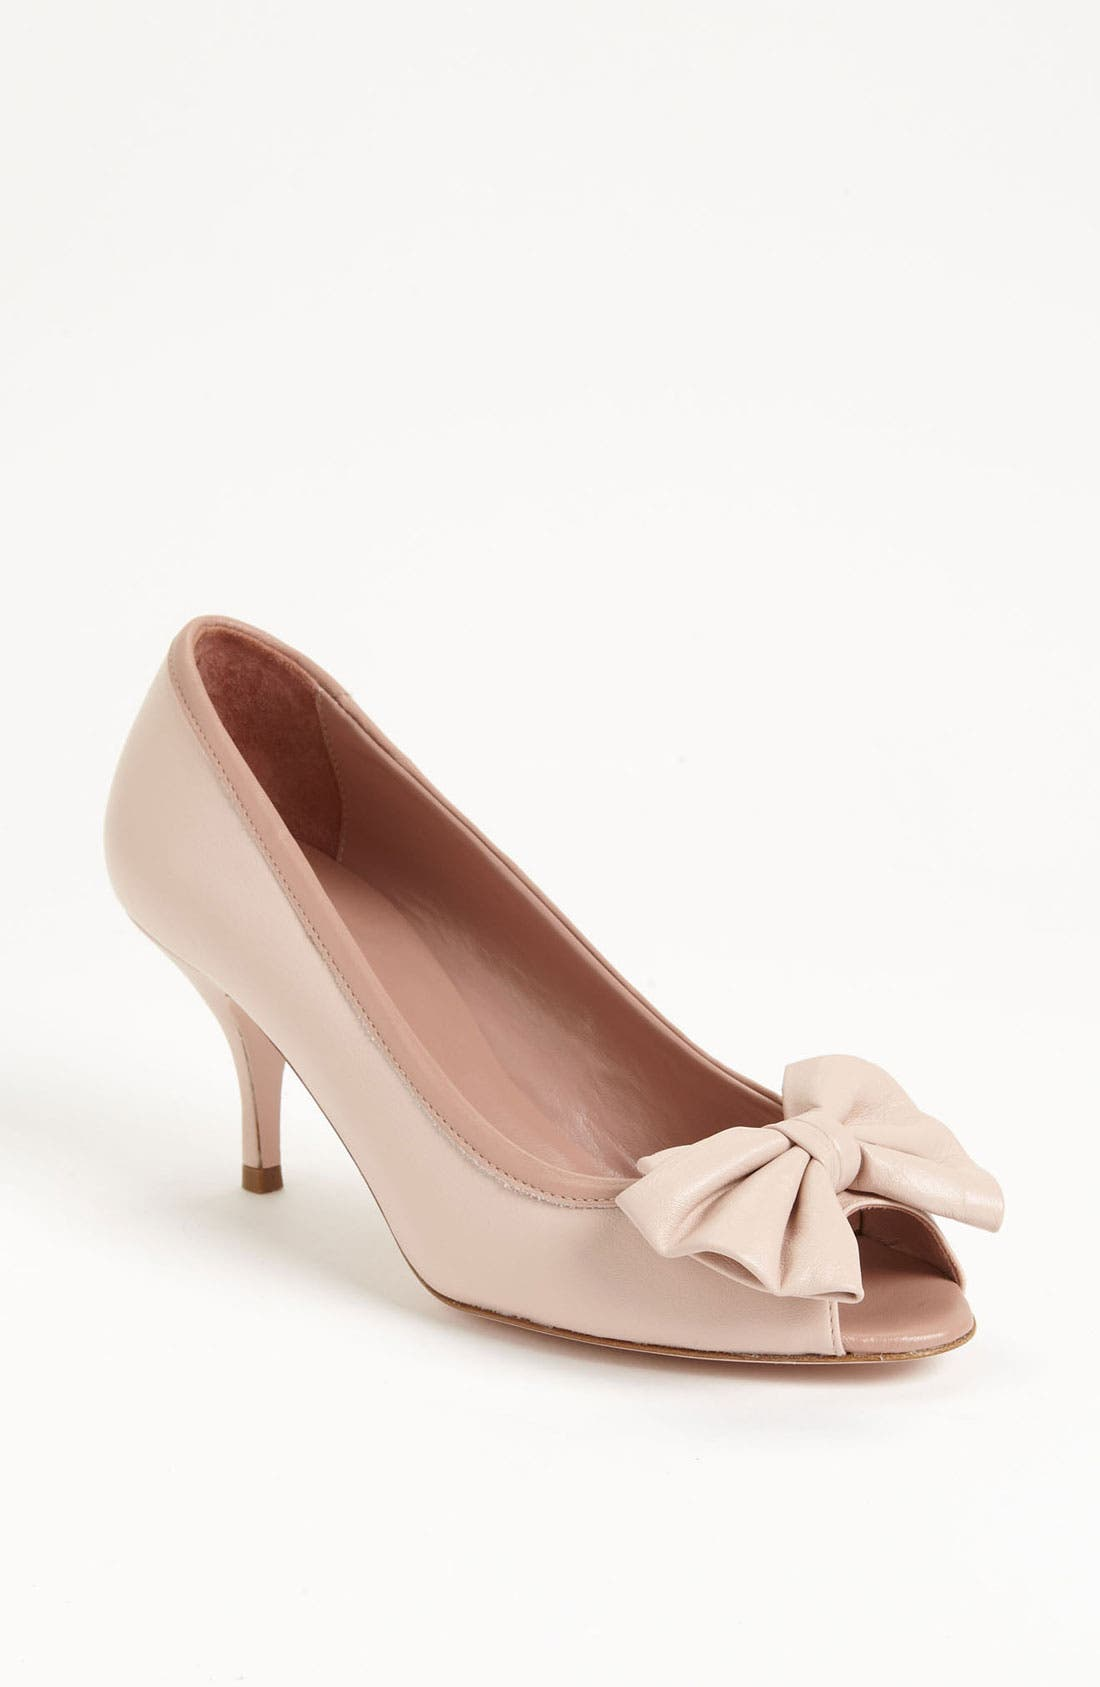 Alternate Image 1 Selected - RED Valentino Peep Toe Pump